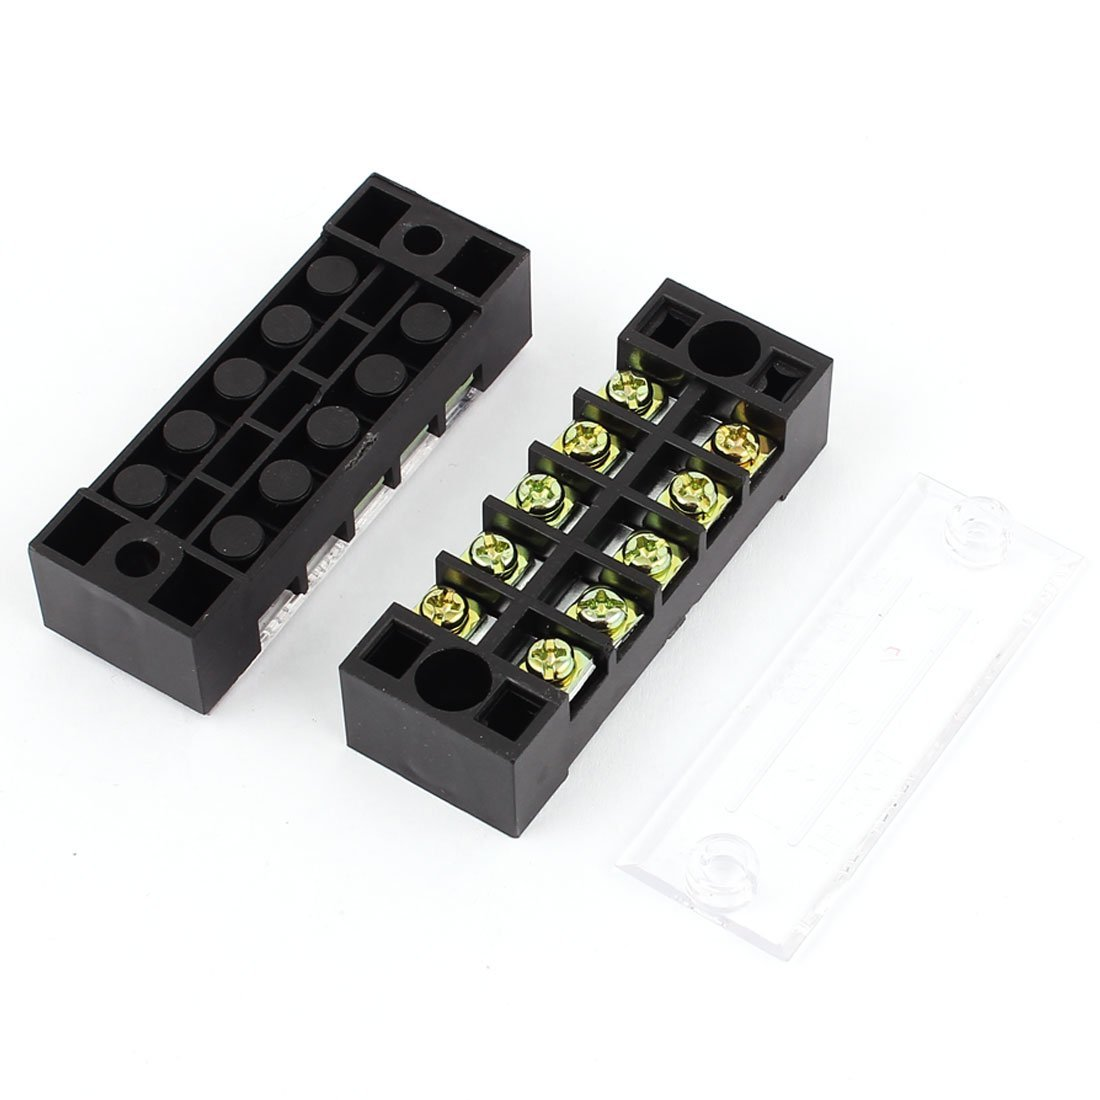 uxcell 2 Pcs 600V 15A 5P Dual Row Barrier Terminal Block Cable Connector Bar